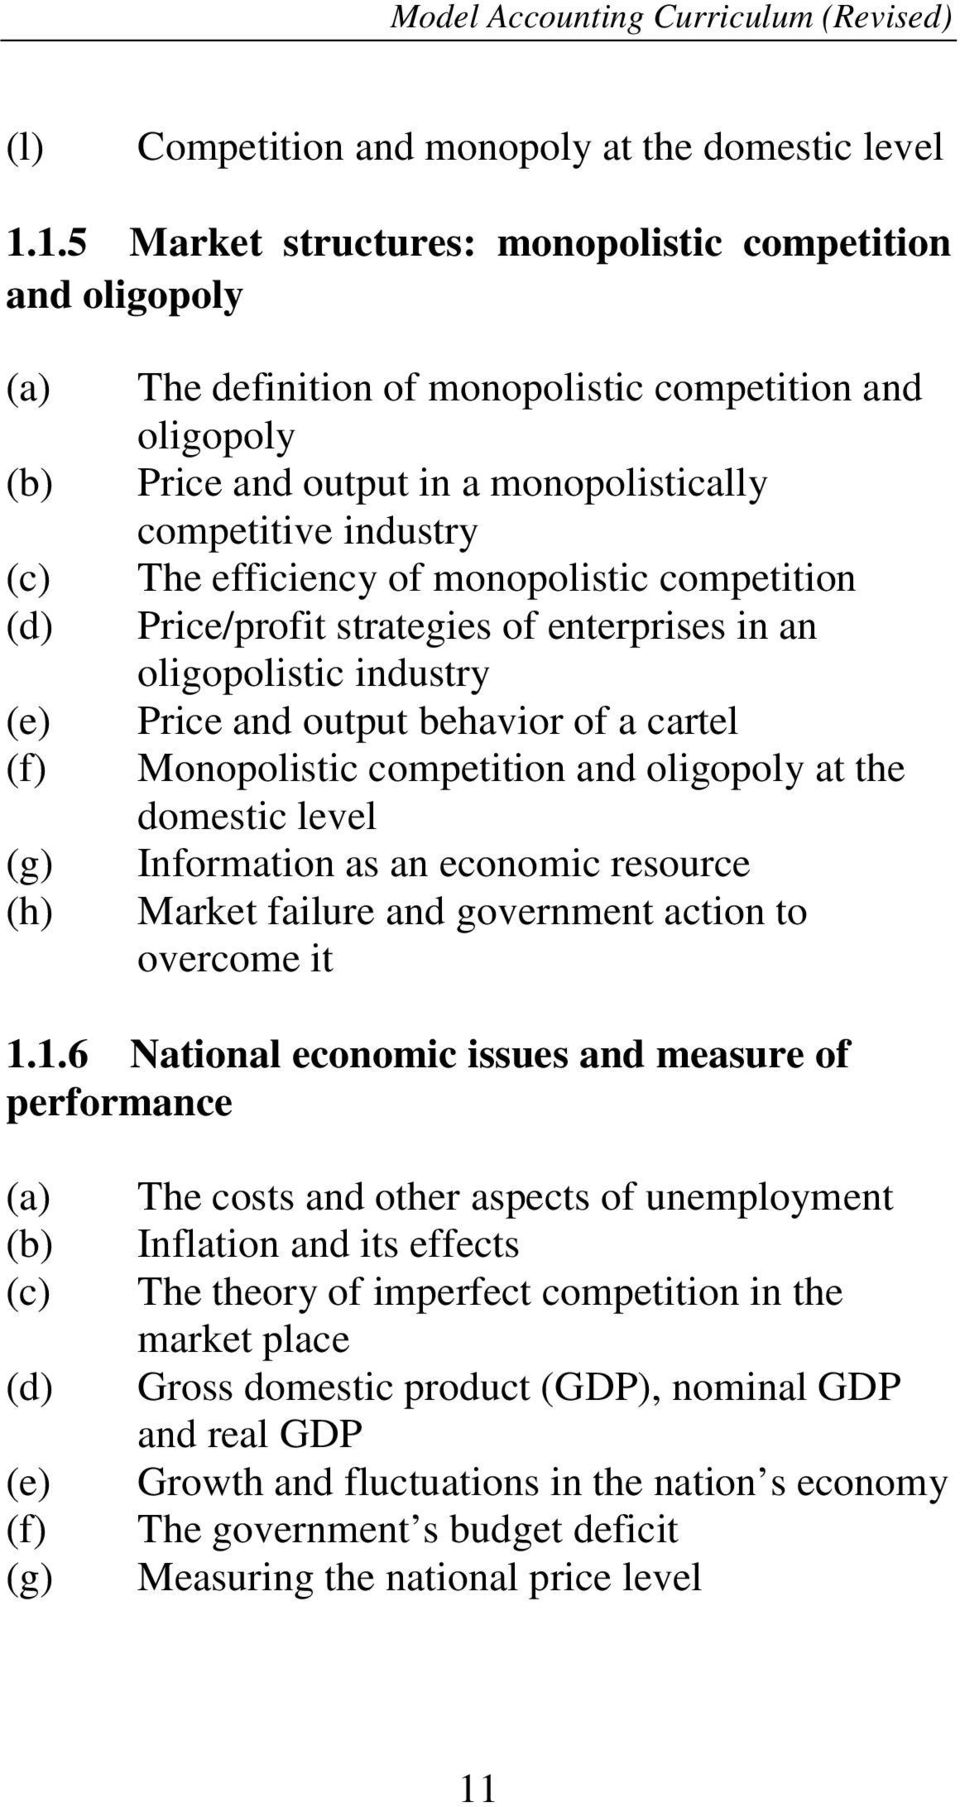 efficiency of monopolistic competition Price/profit strategies of enterprises in an oligopolistic industry Price and output behavior of a cartel Monopolistic competition and oligopoly at the domestic